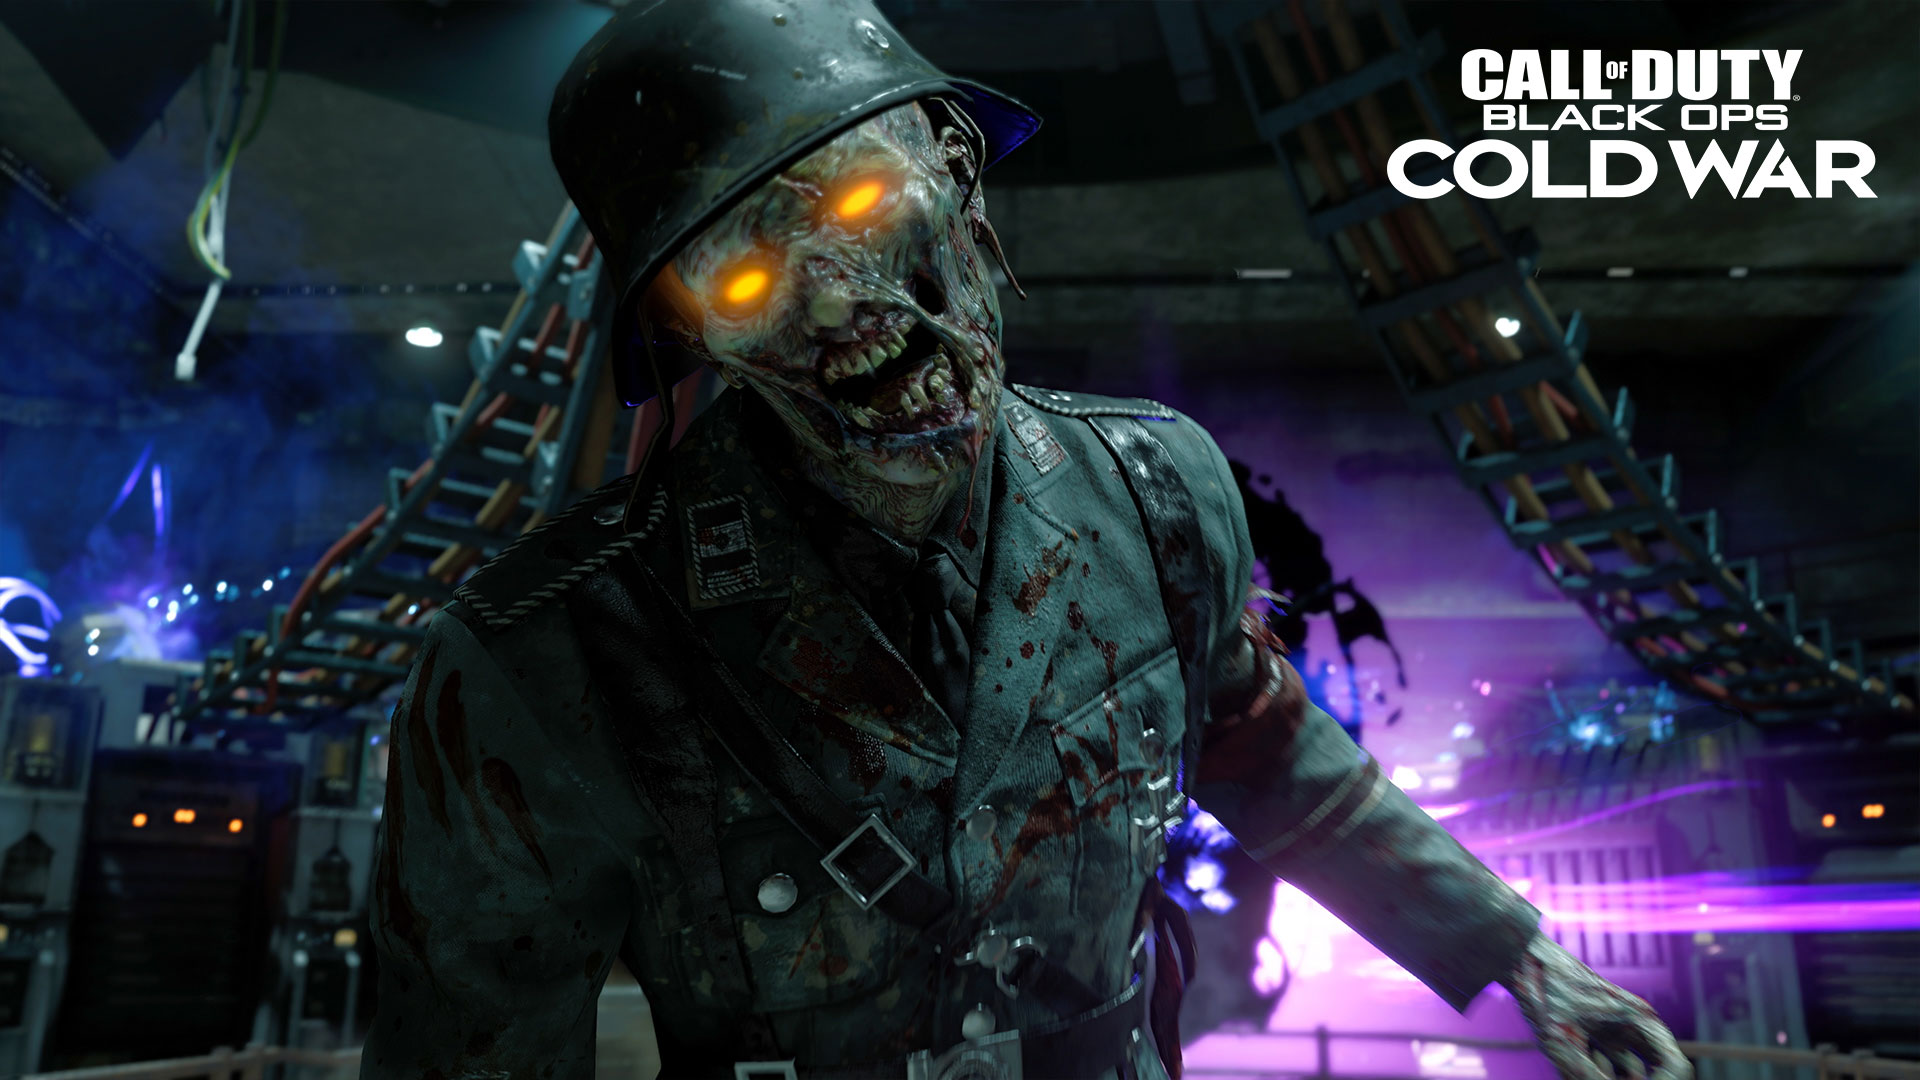 ps4 call of duty black ops cold war zombies